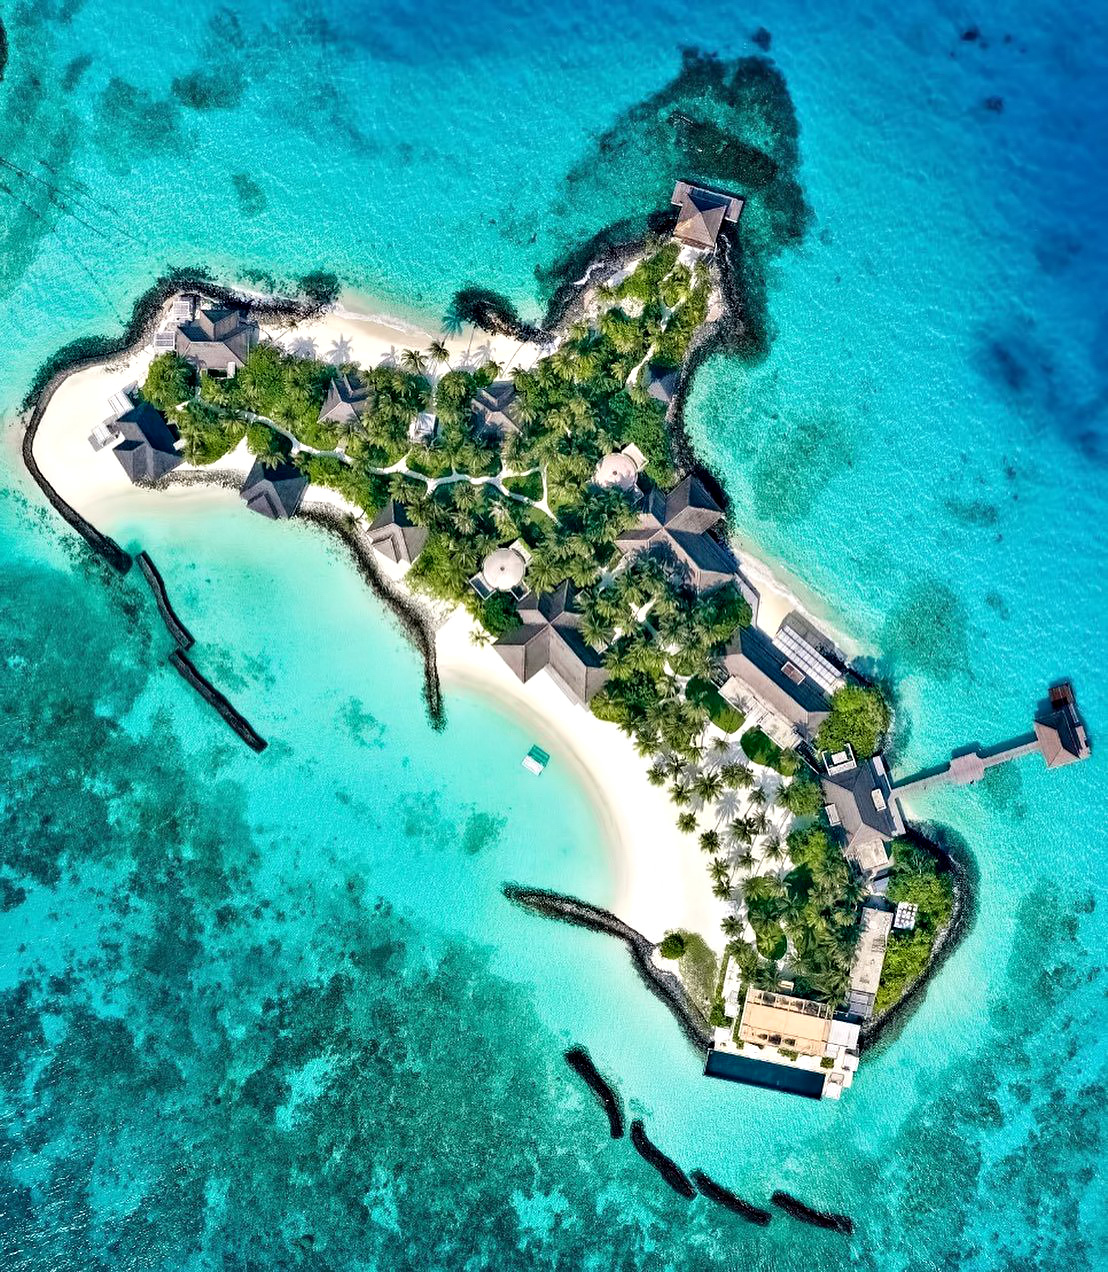 Cheval Blanc Randheli Luxury Resort - Noonu Atoll, Maldives - Exclusive Private Island Overhead Aerial